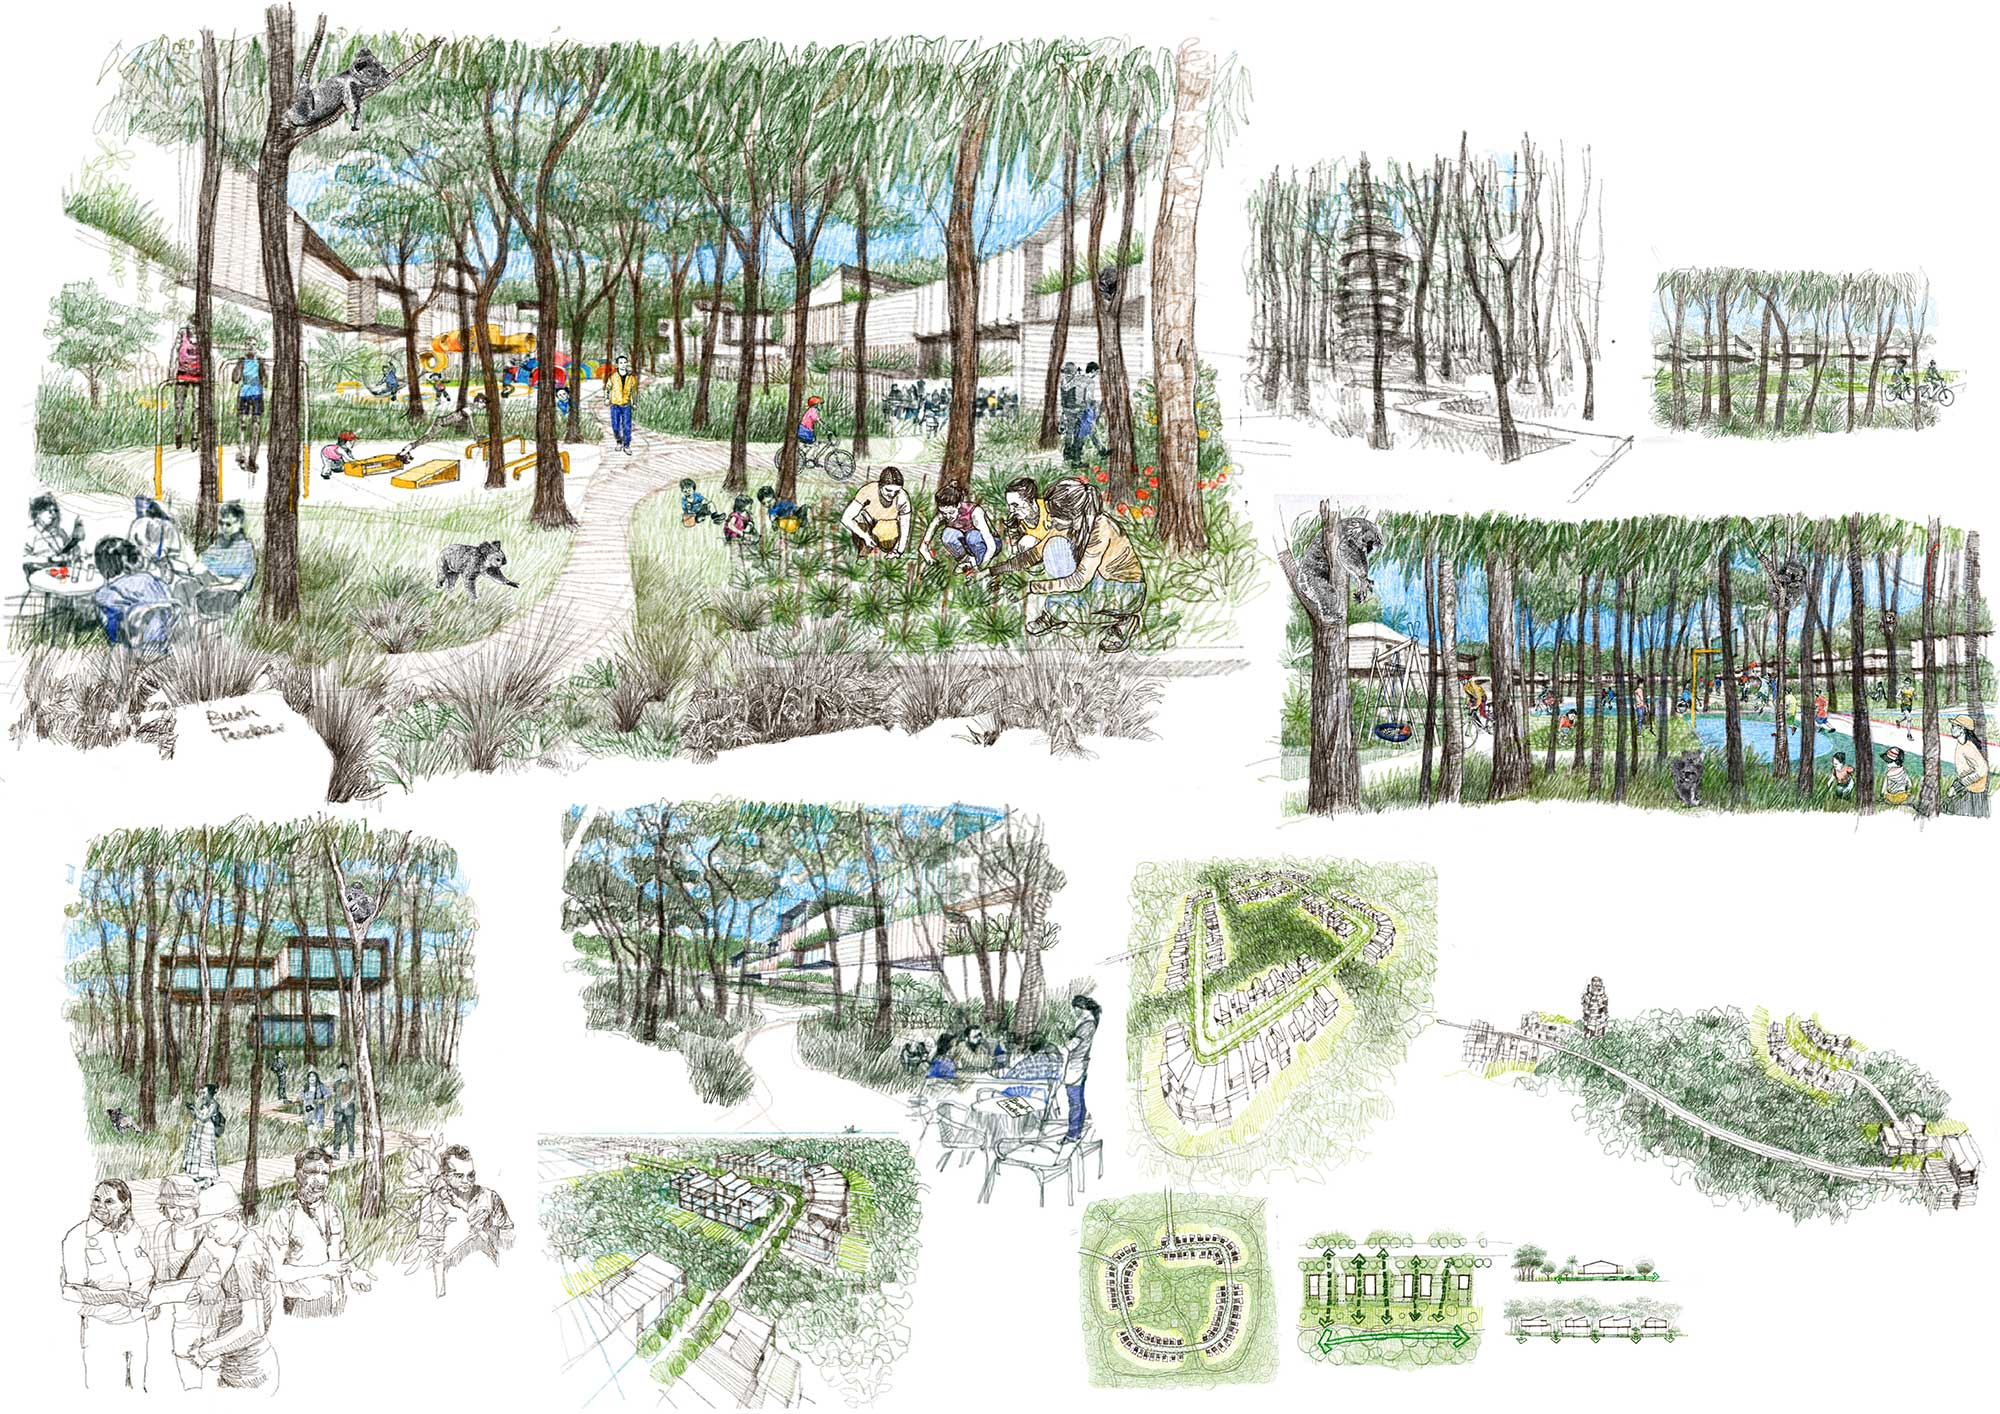 greenridge-sketches-mark-gerada.jpg